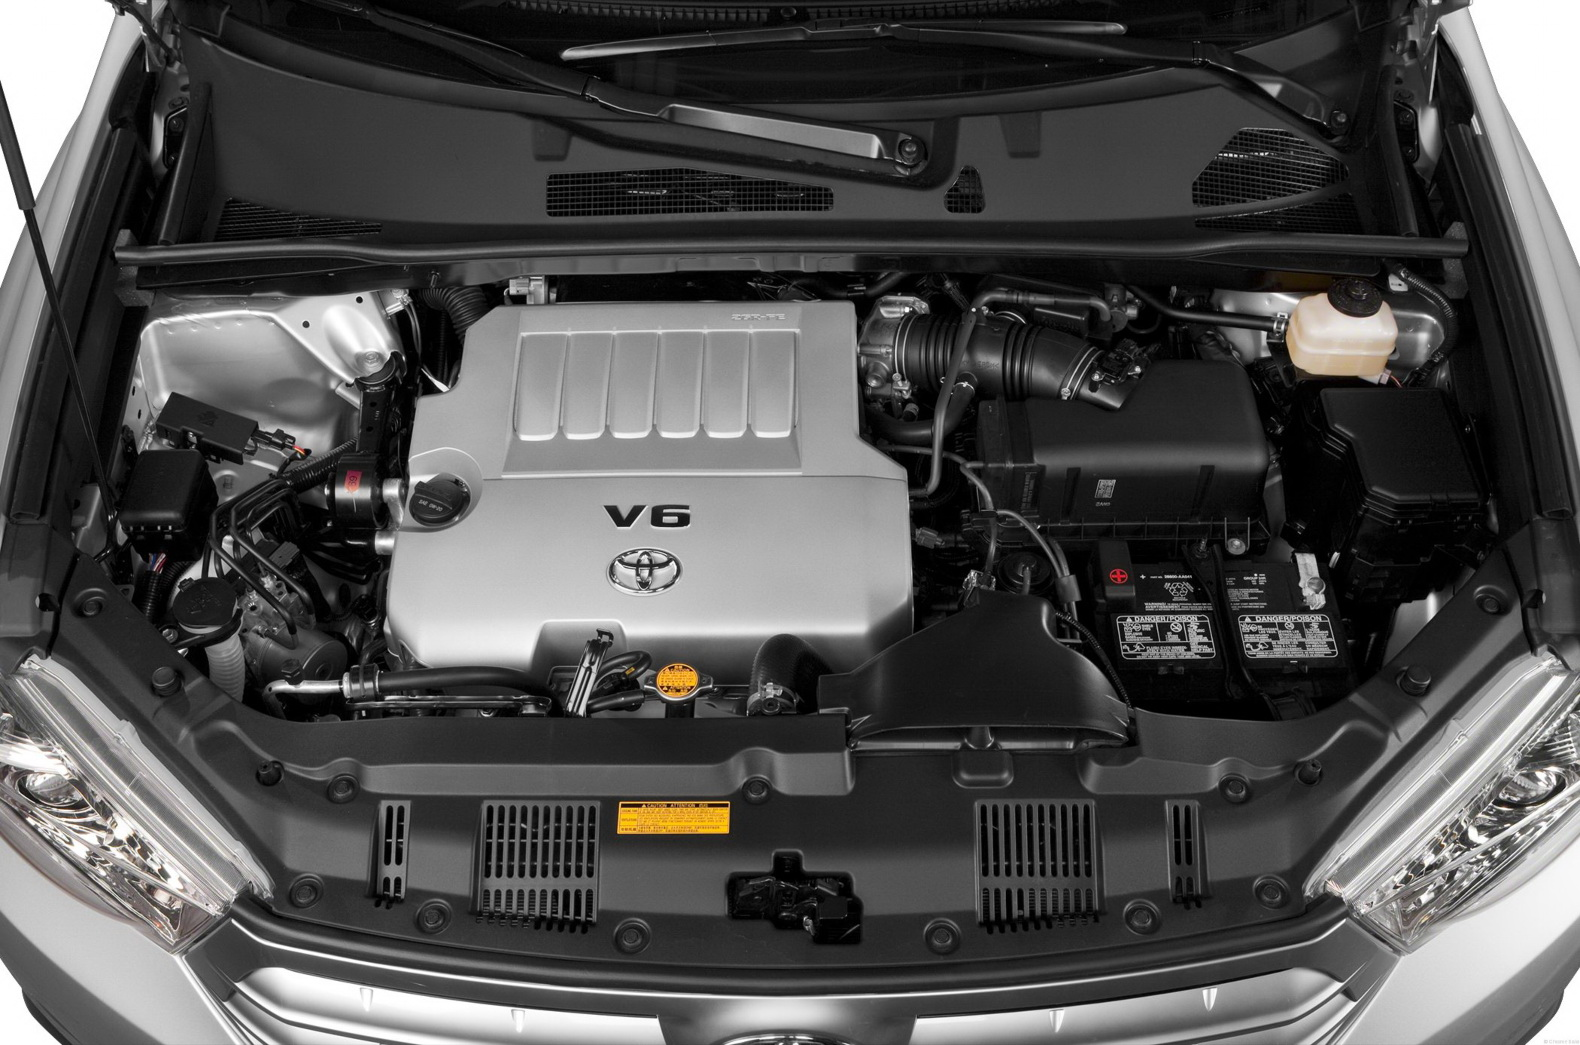 5 a toyota engine submited images